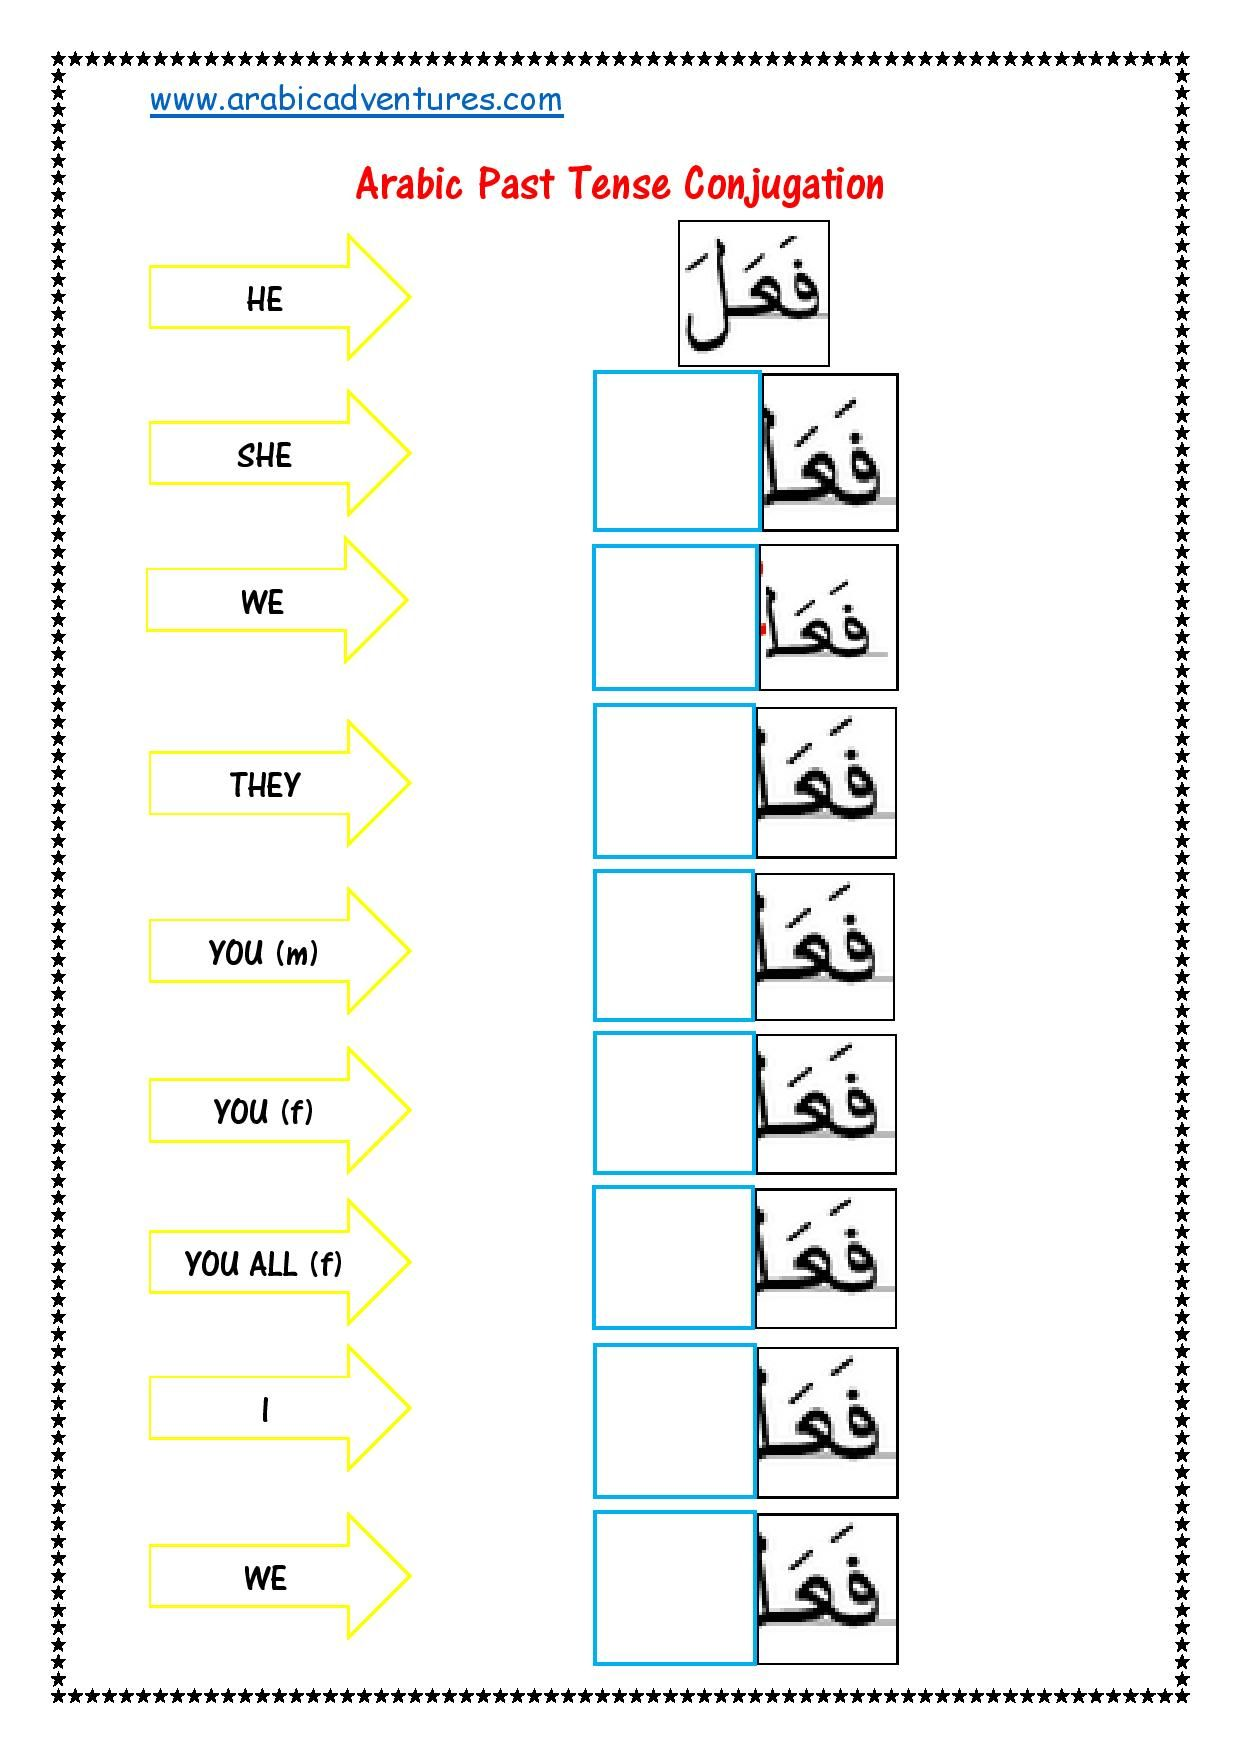 Arabic Past Tense Fill In The Blank Laminate And Use With